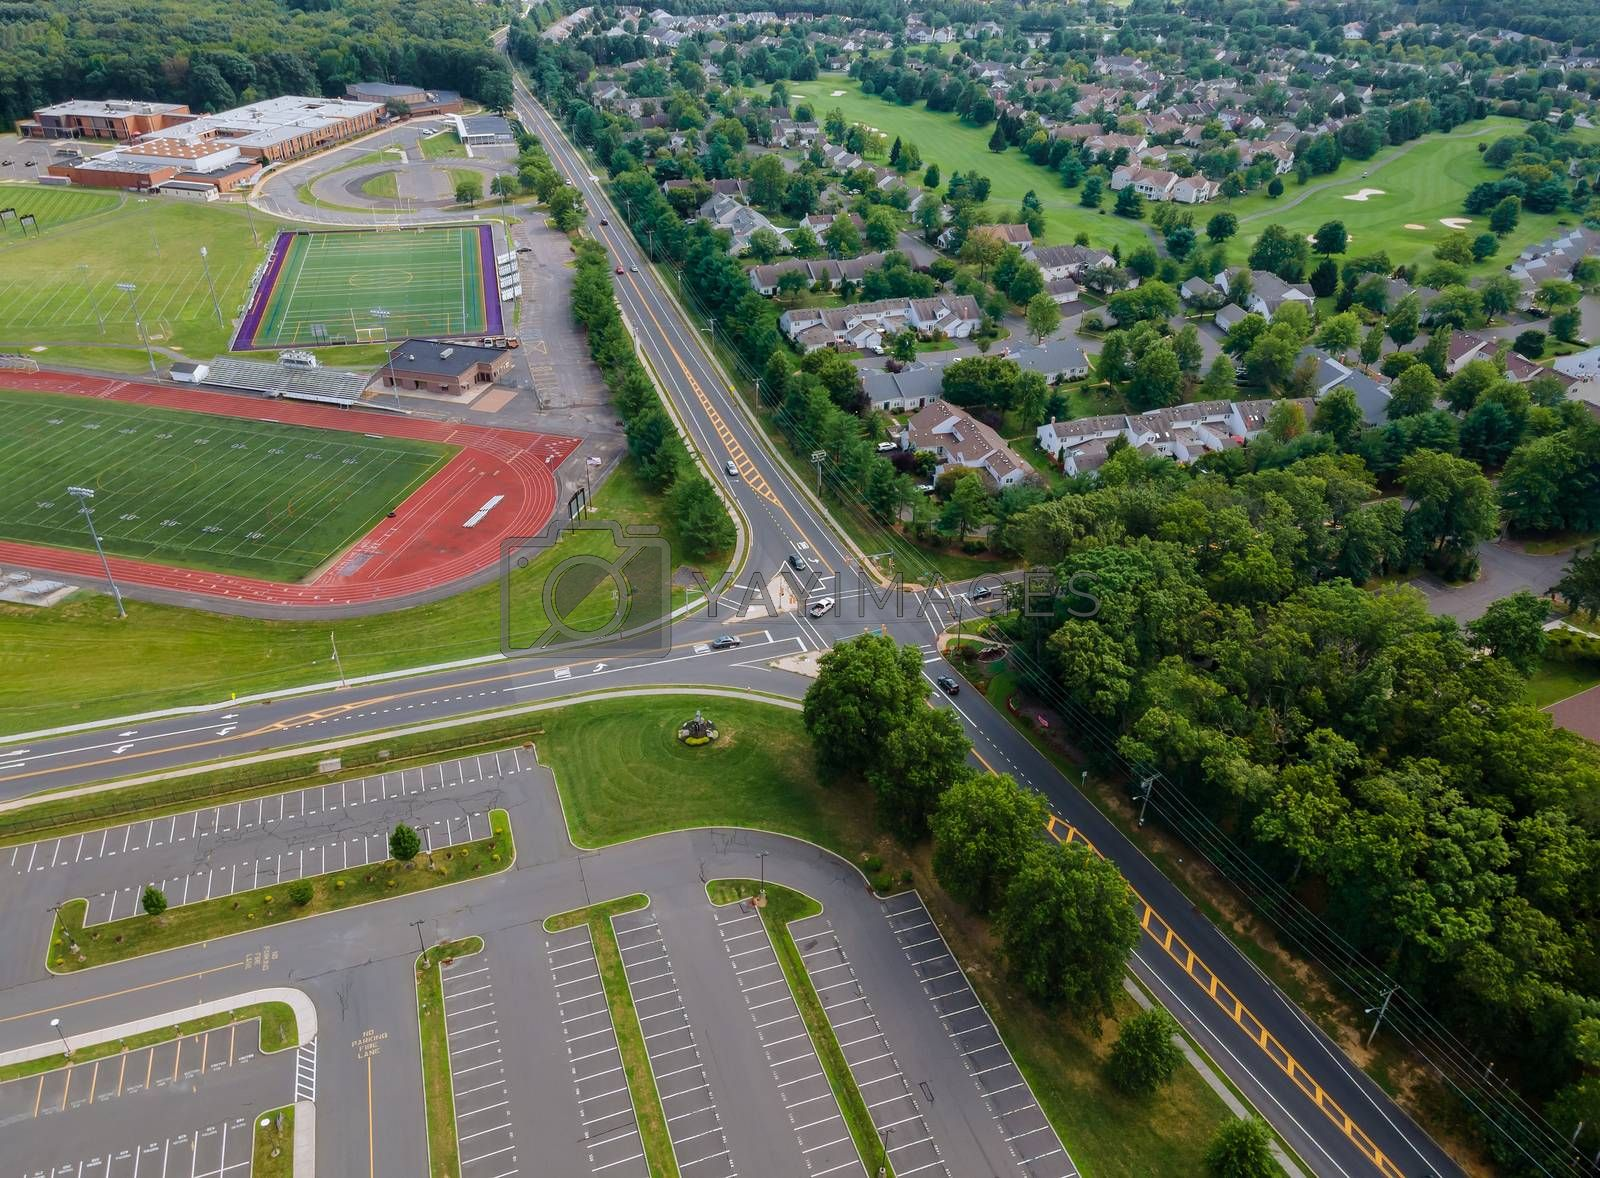 Aerial view of empty stadium with basketball field and training ground along athletic stadium running track in school in the during a pandemic